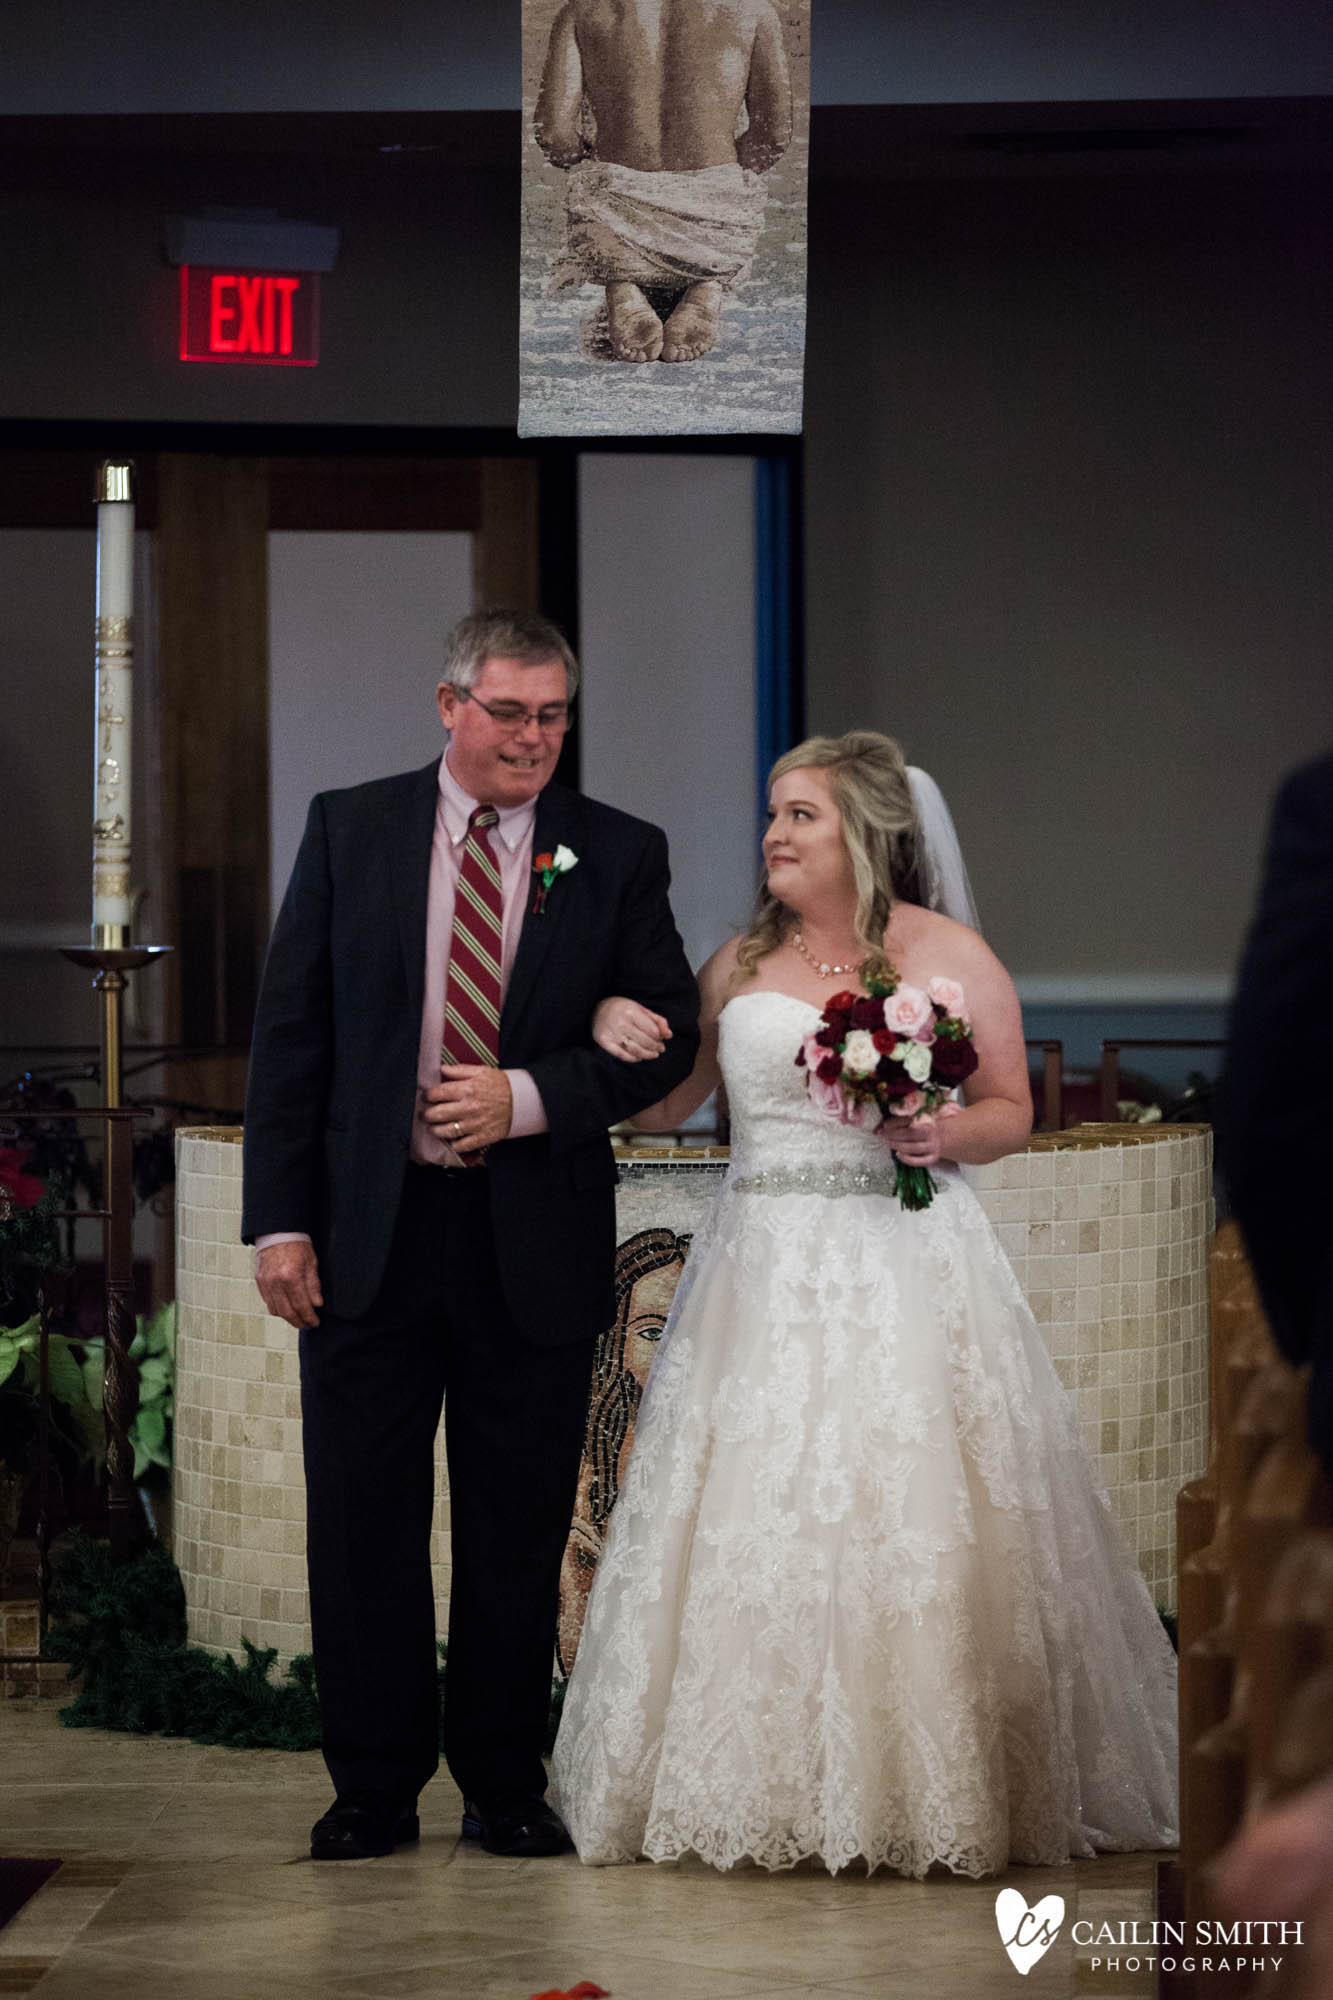 Christie_Nathan_Wedding_Photography_0050.jpg